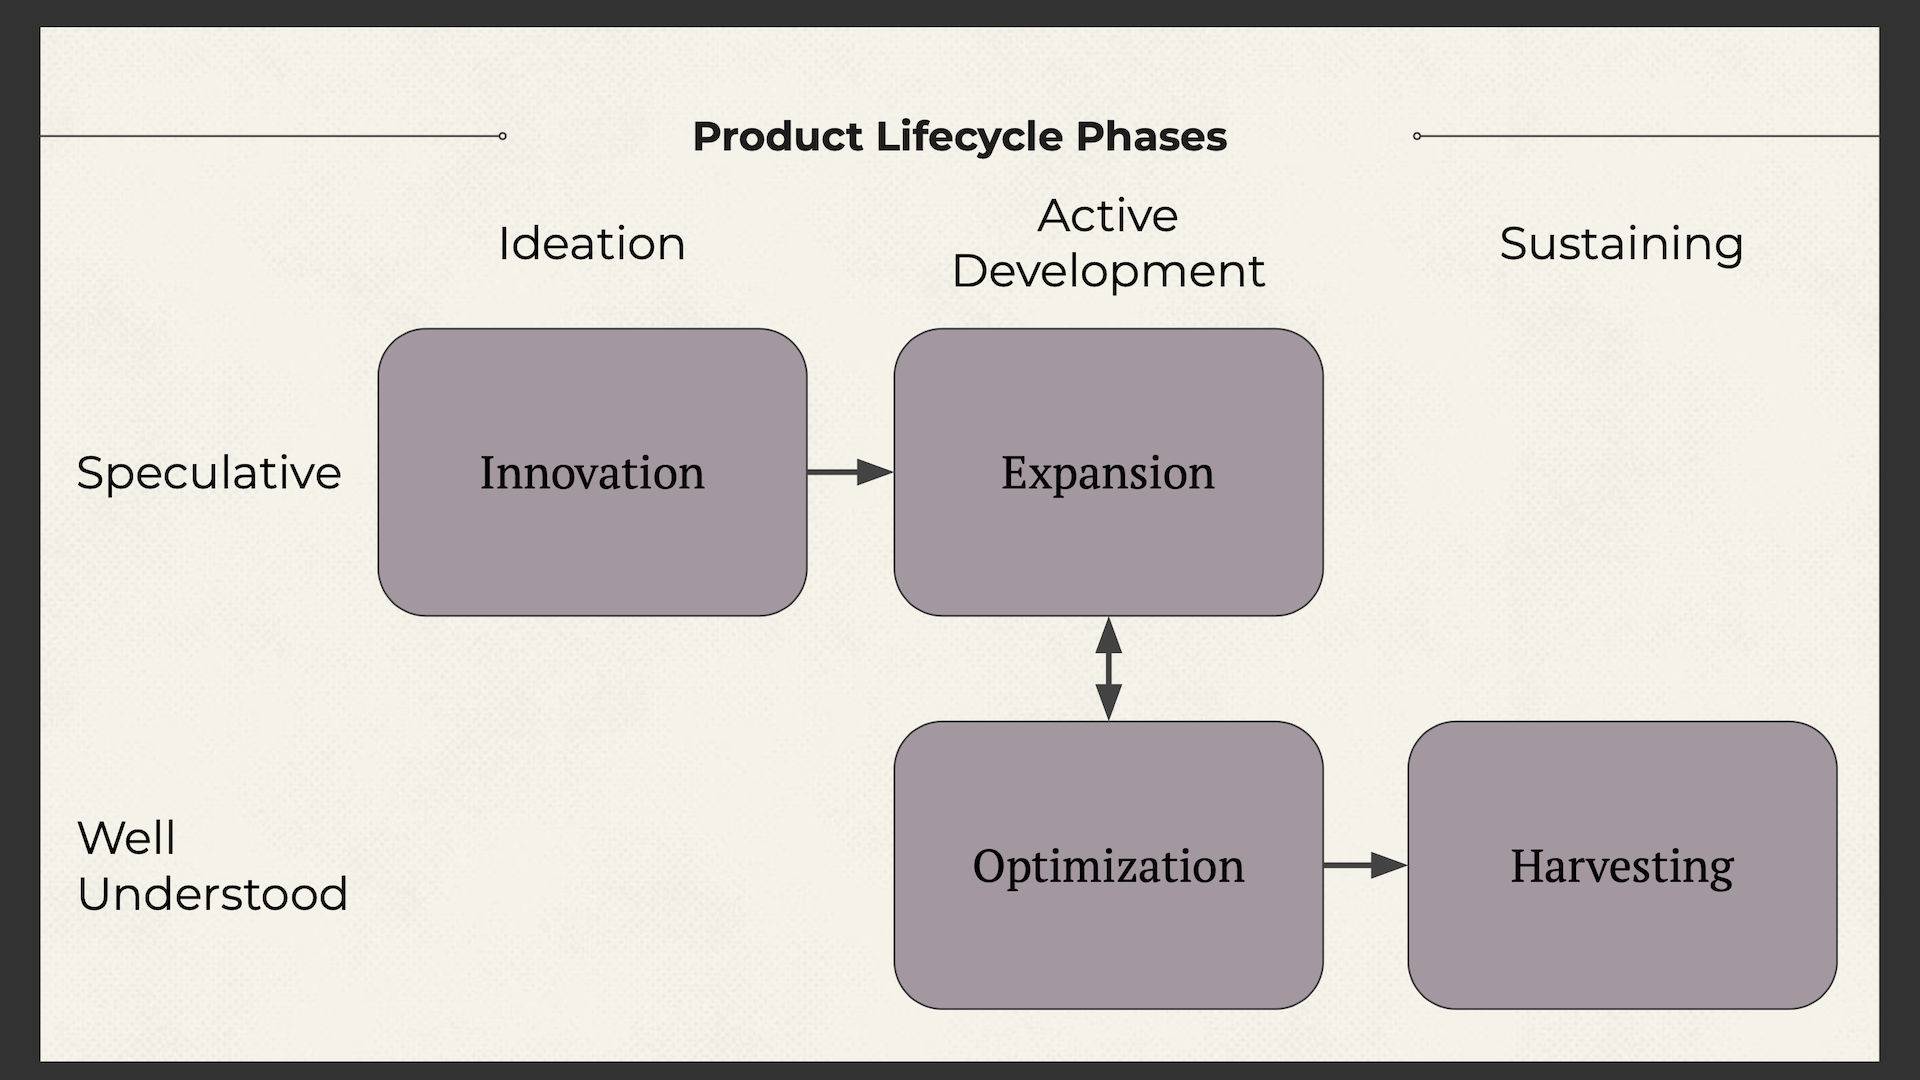 Product Lifecycle phases laid out on an x/y axis